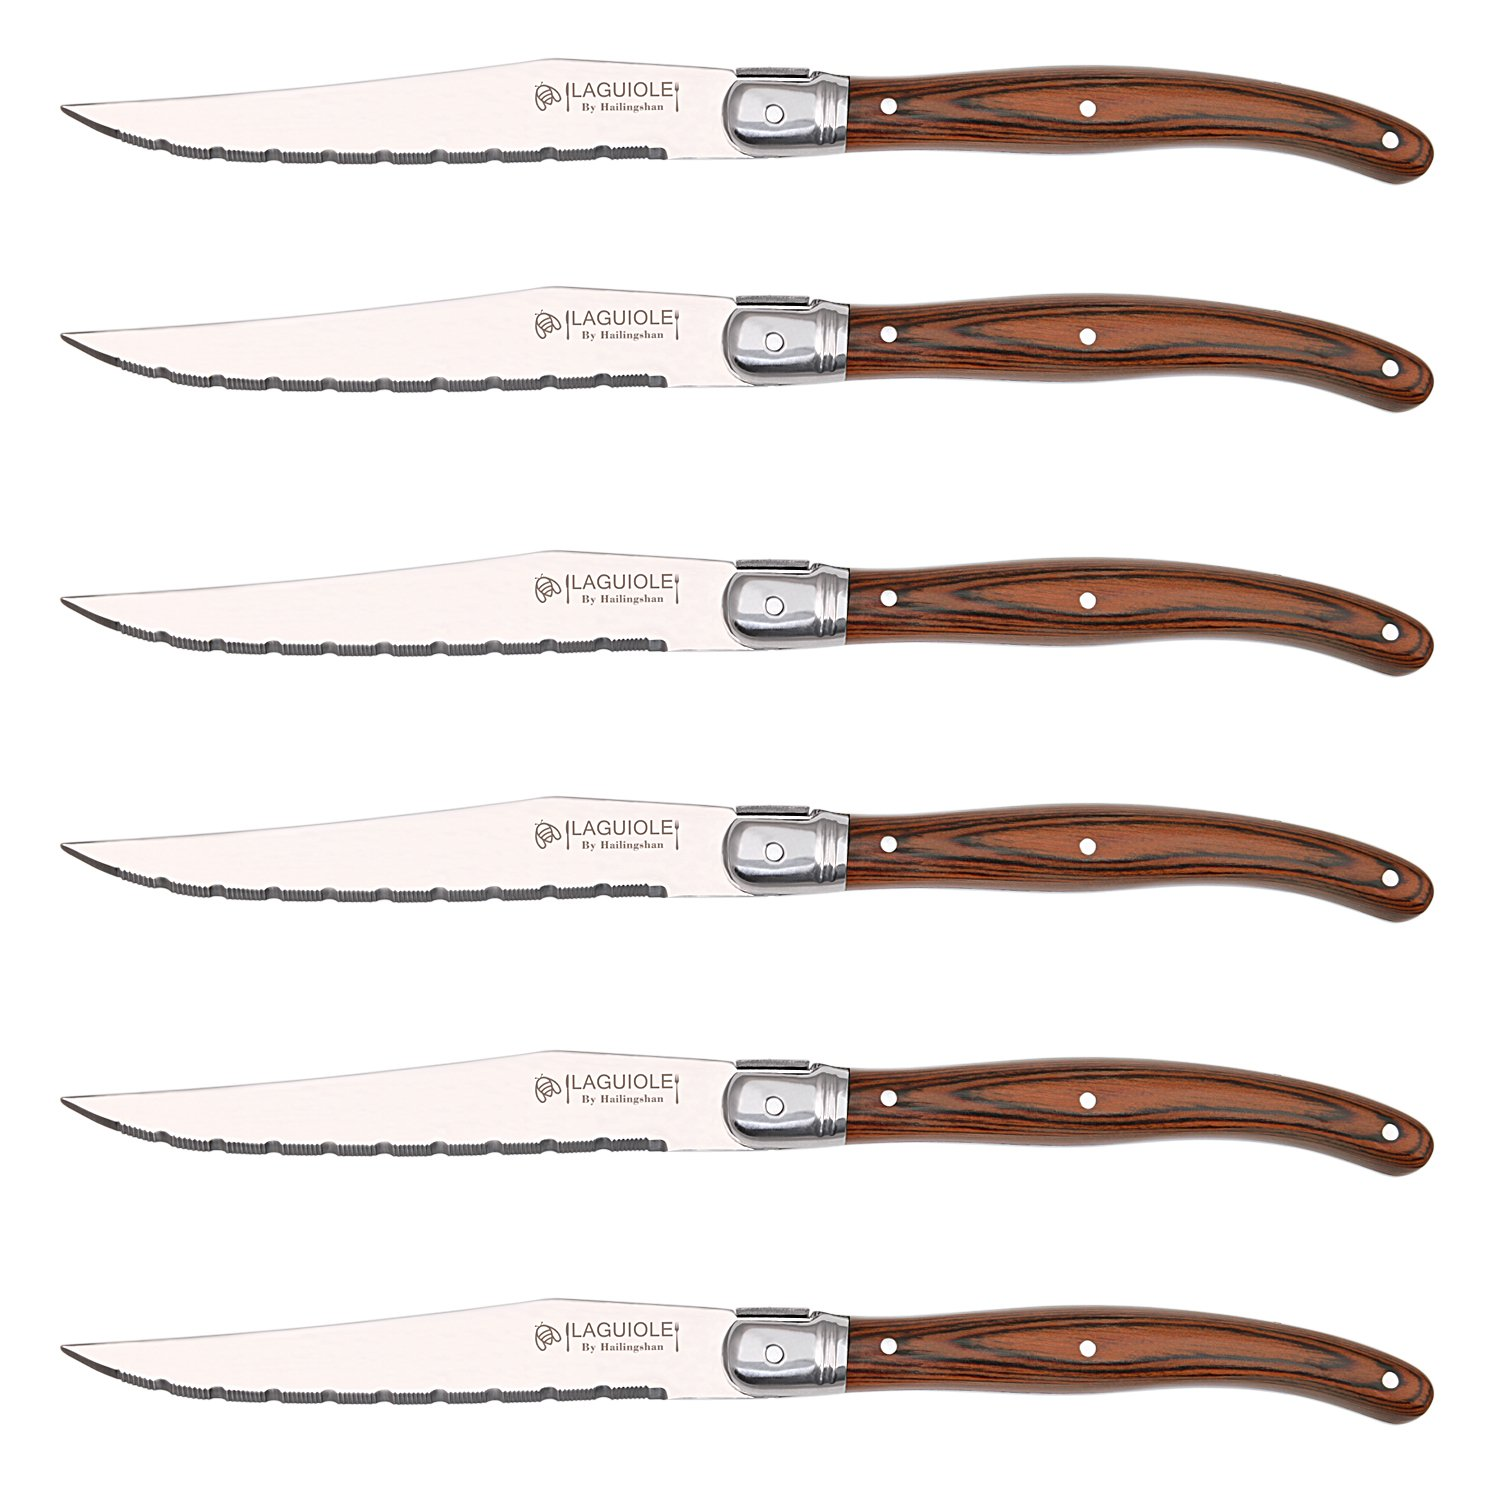 [Set of 6] Steak Knives Set,Laguiole by Hailingshan Stainless Steel Serrated Dishwasher Safe Premium Heavy Sharp Kitchen Cutlery Tableware Dinner Utensil Flatware Boxed Table Steak Knives-Wood Handle by Laguiole by Hailingshan (Image #1)